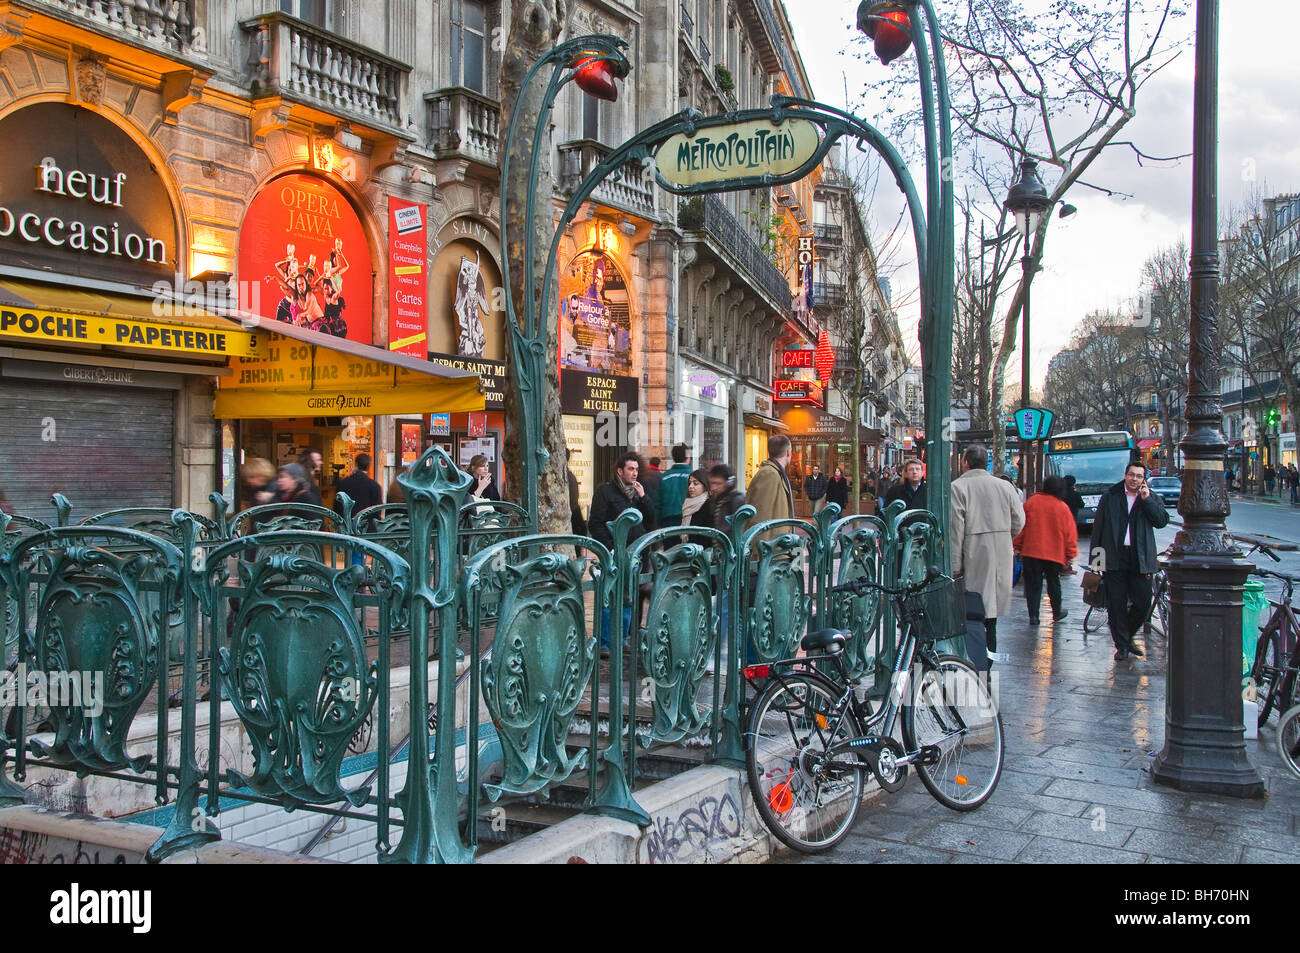 Quartier Latin Paris France - Stock Image